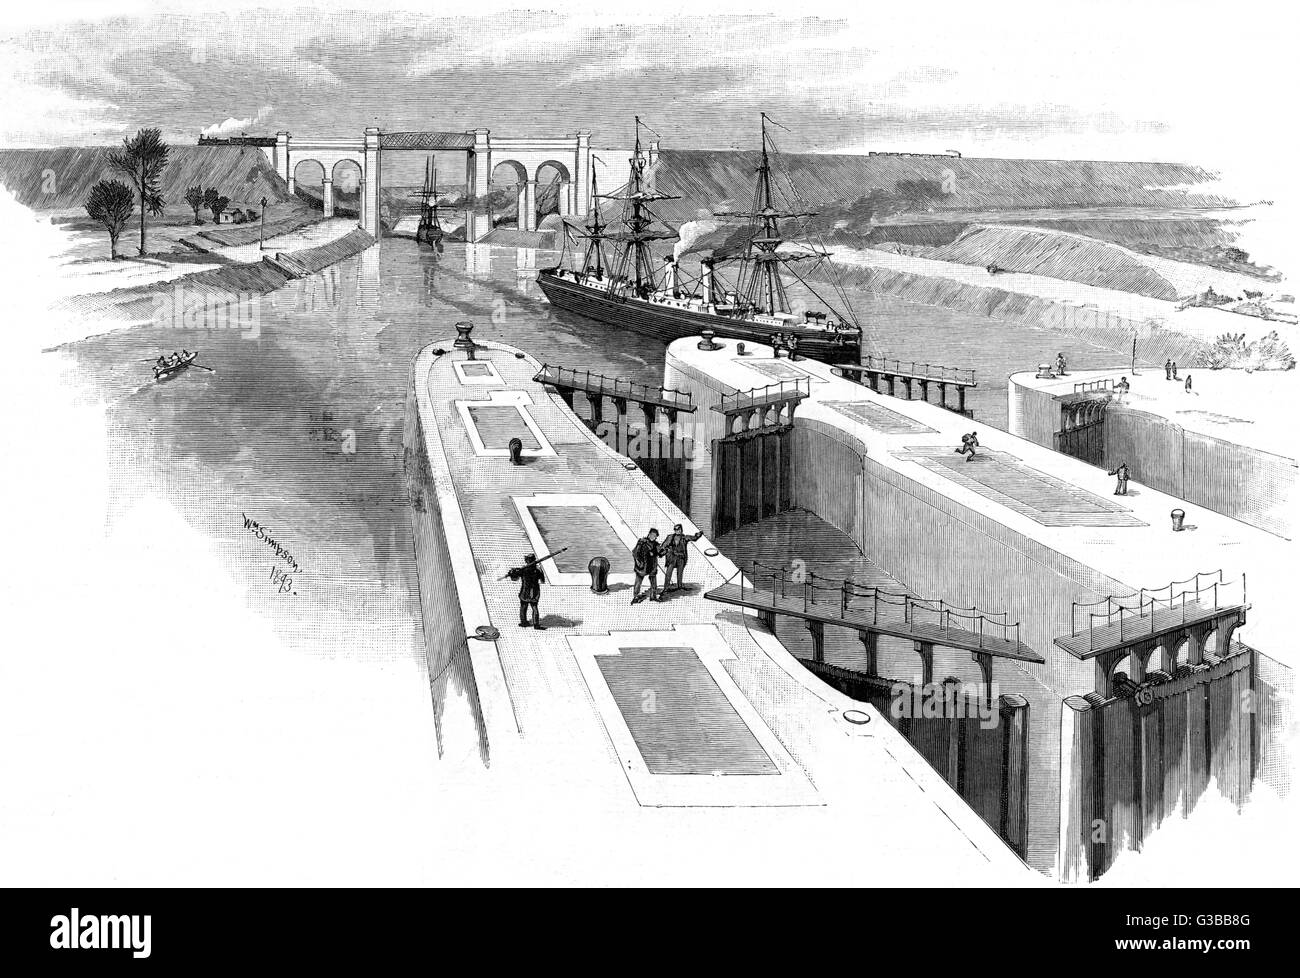 A steamer enters Irlam Lock :  a railway train crosses the  viaduct.        Date: 1893 - Stock Image